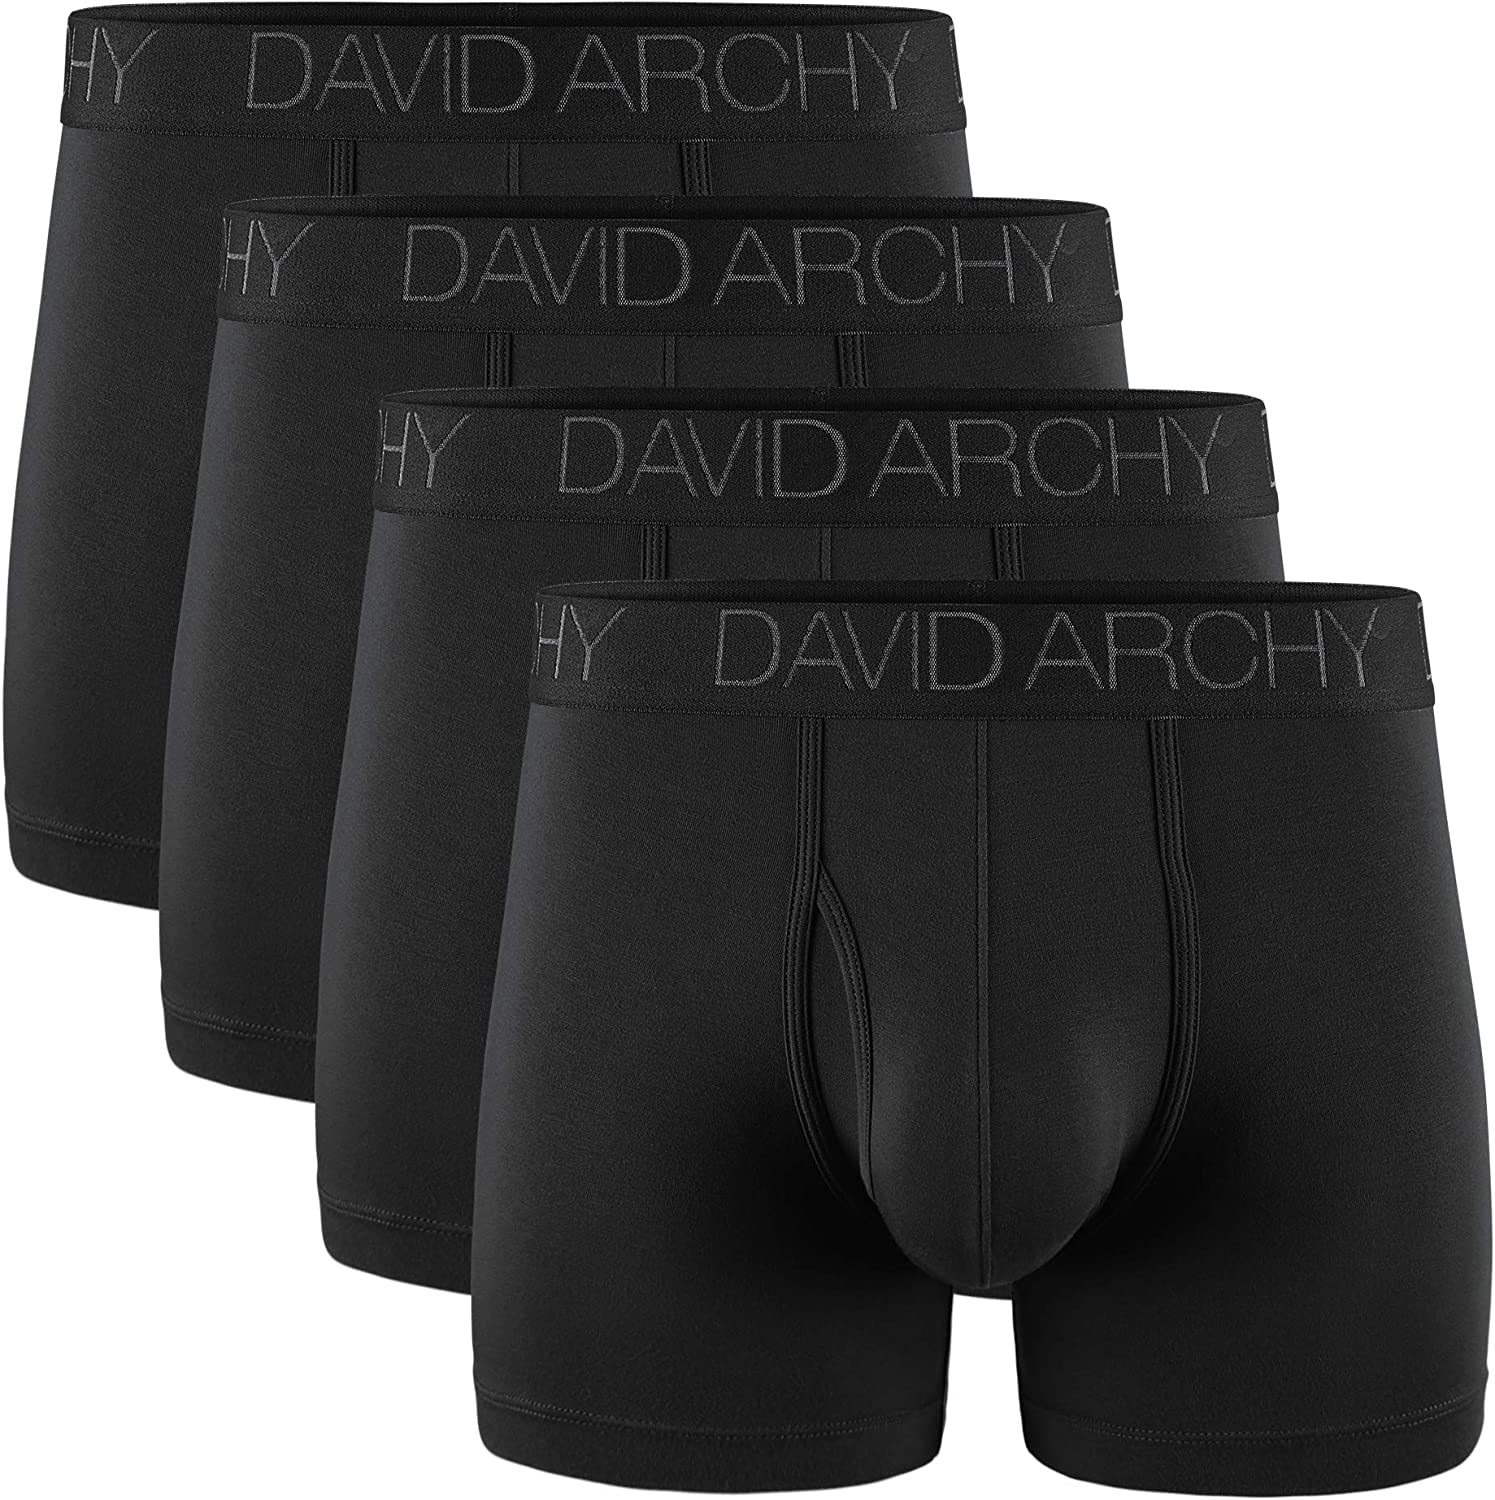 DAVID ARCHY Men's Underwear Breathable Boxer Briefs Bamboo Rayon Trunks with Fly in 3 or 4 Pack